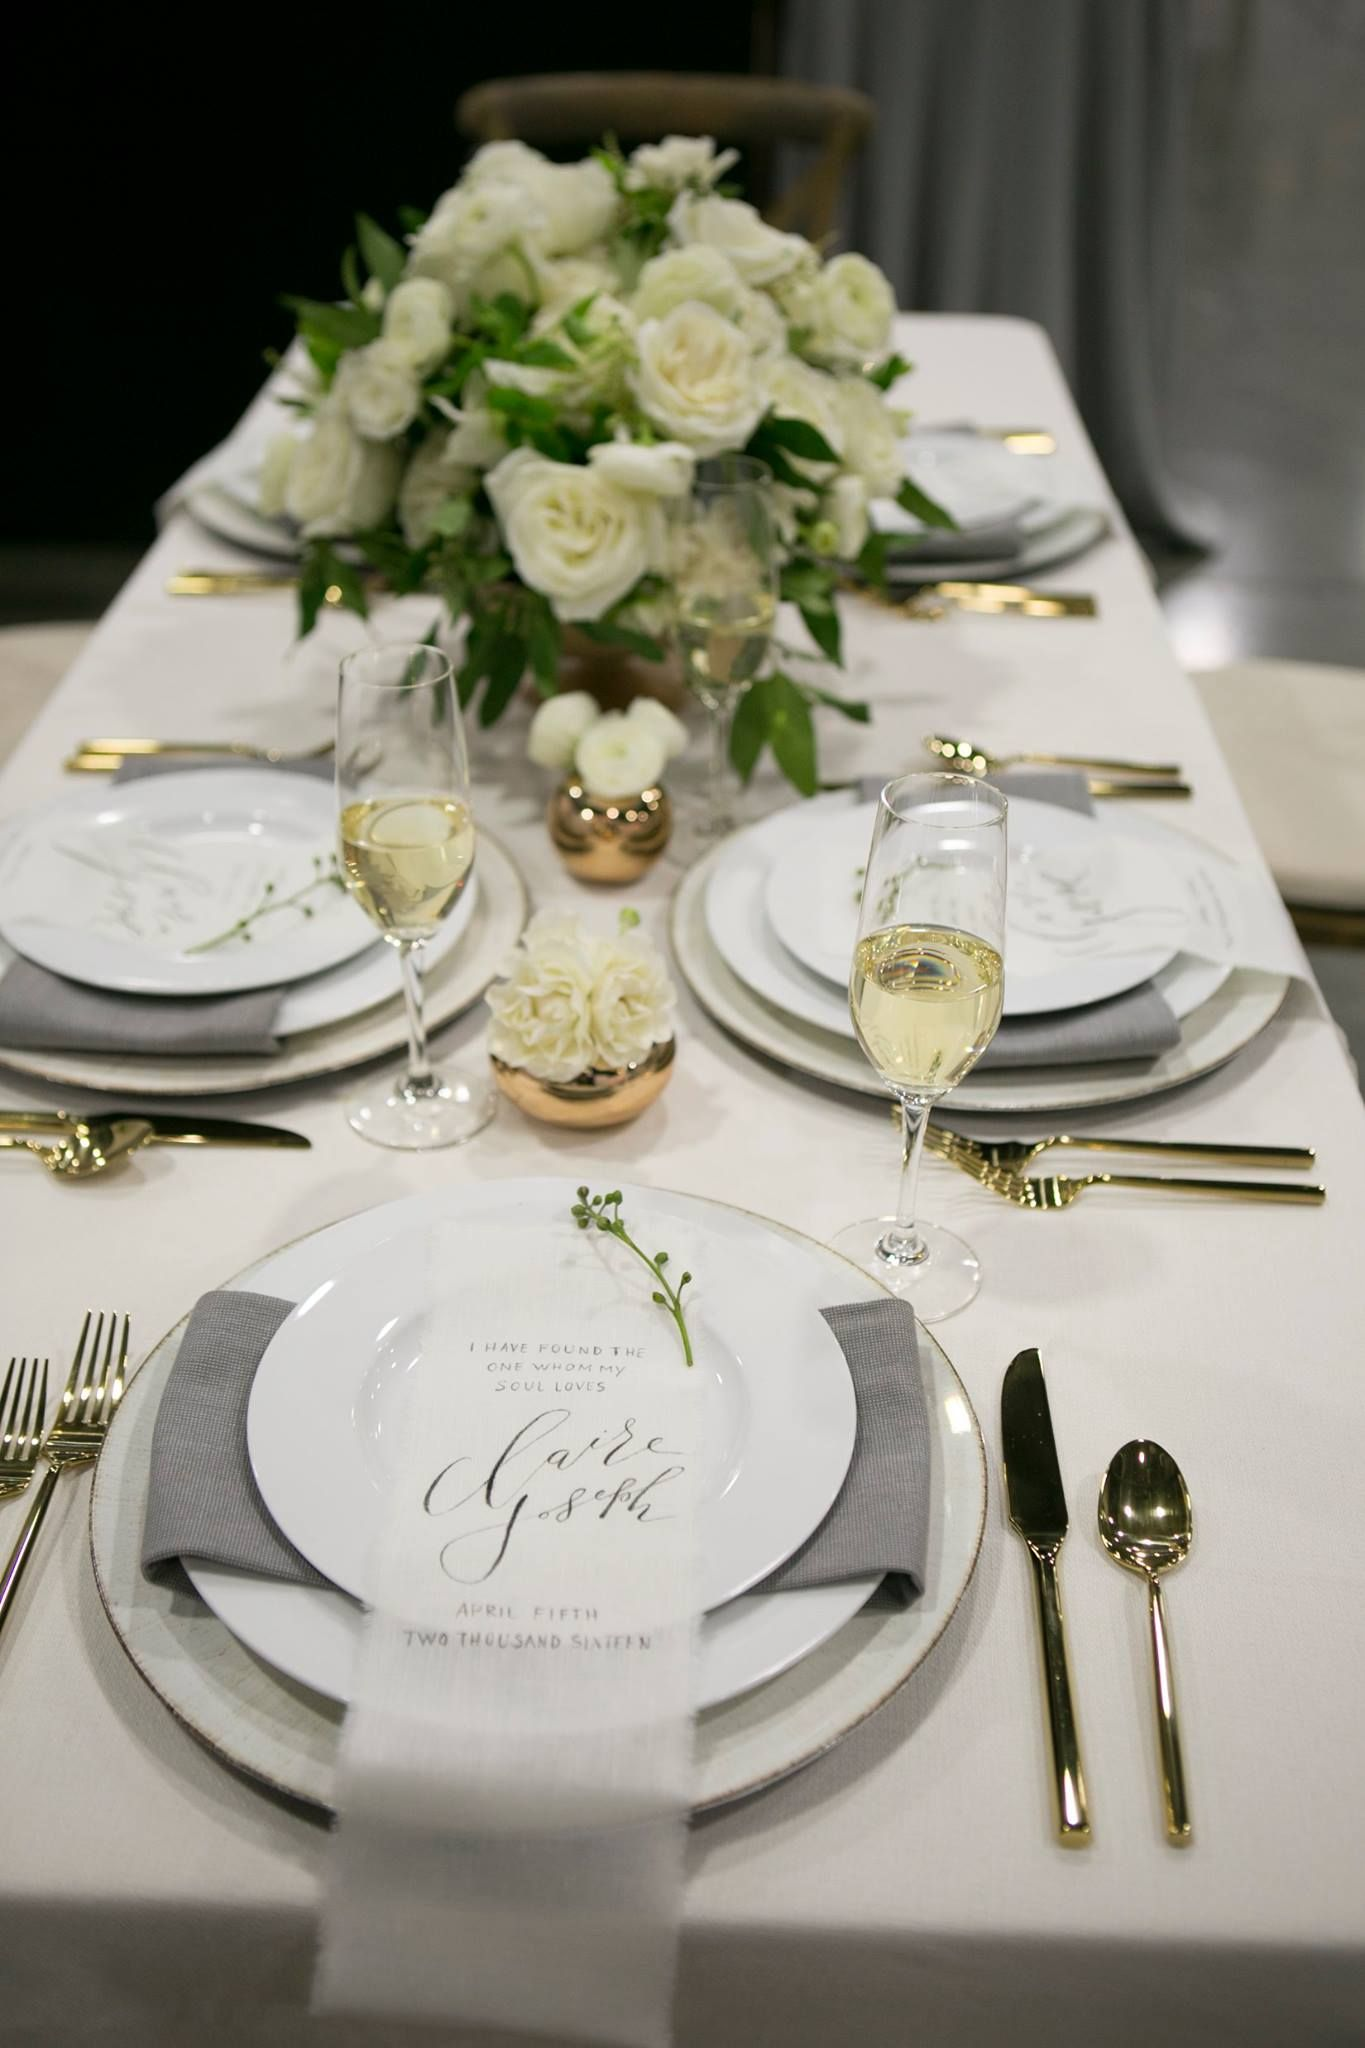 Elegant White Table Setting By Stem Floral Design Wedding Dinner